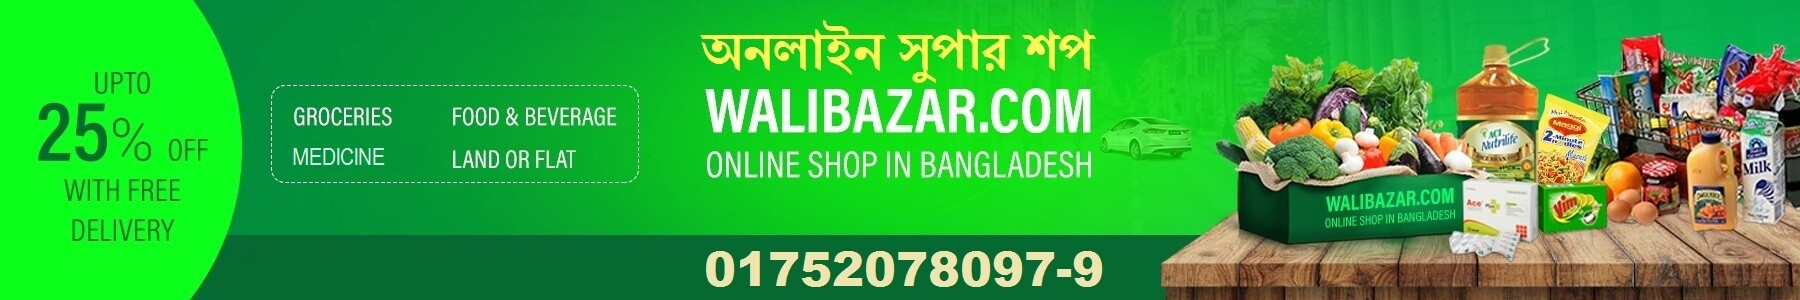 Online Shopping in Dhaka